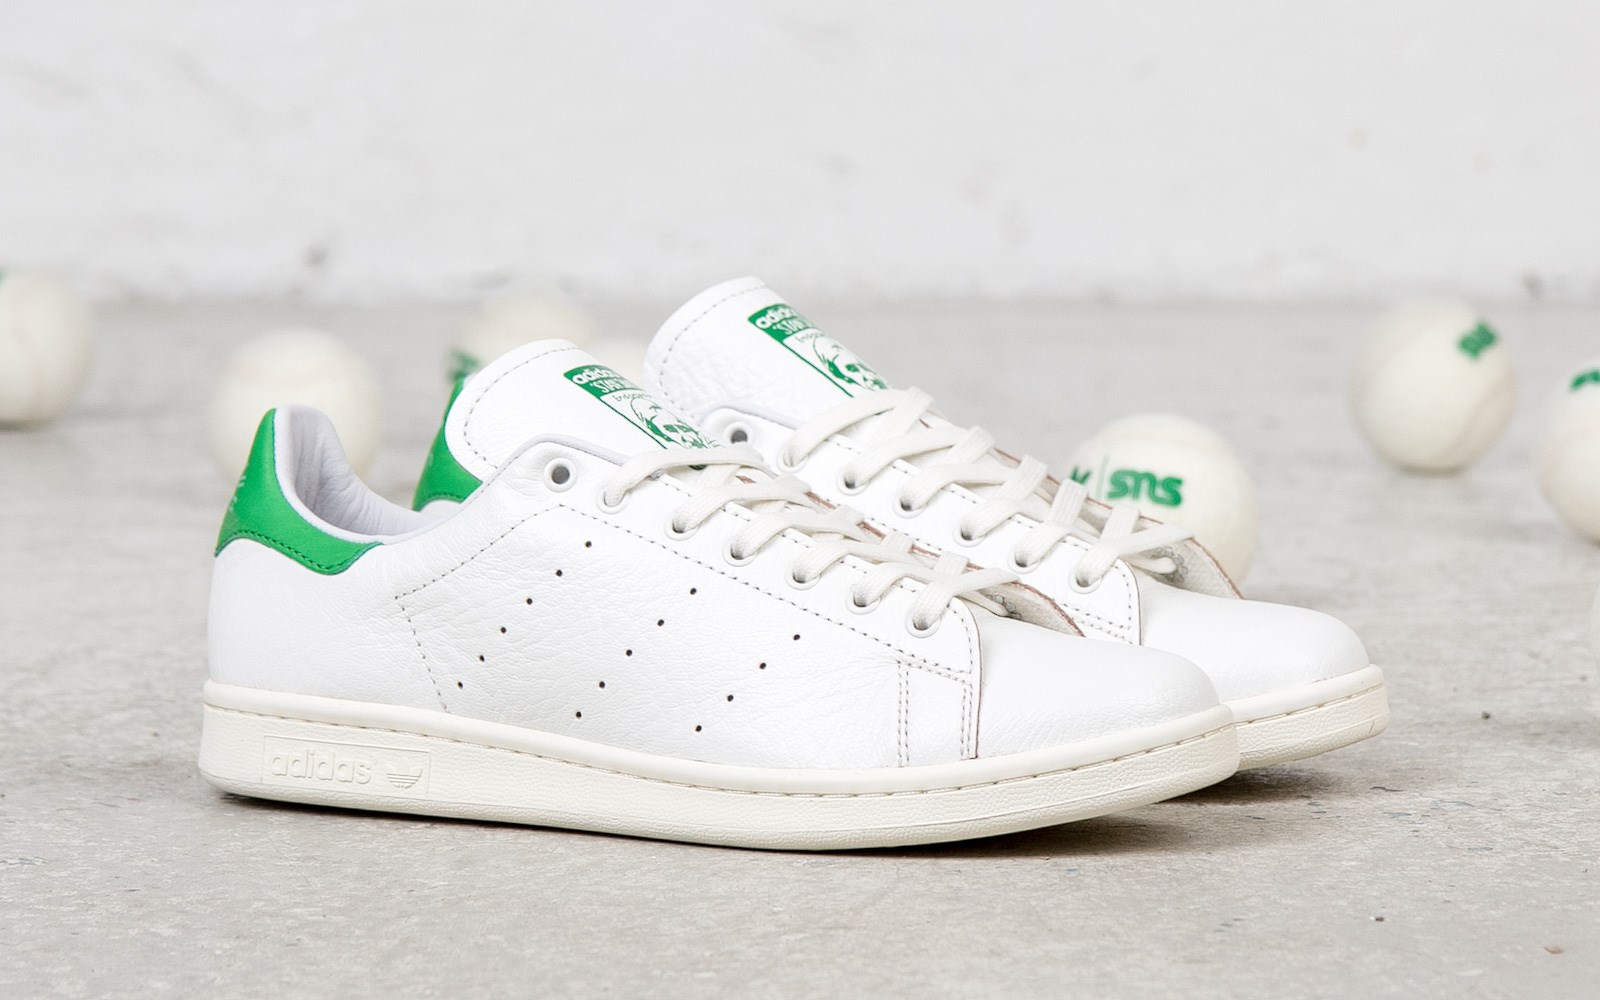 adidas-originals-consortium-stan-smith-aniline-leather-detailed-images-11